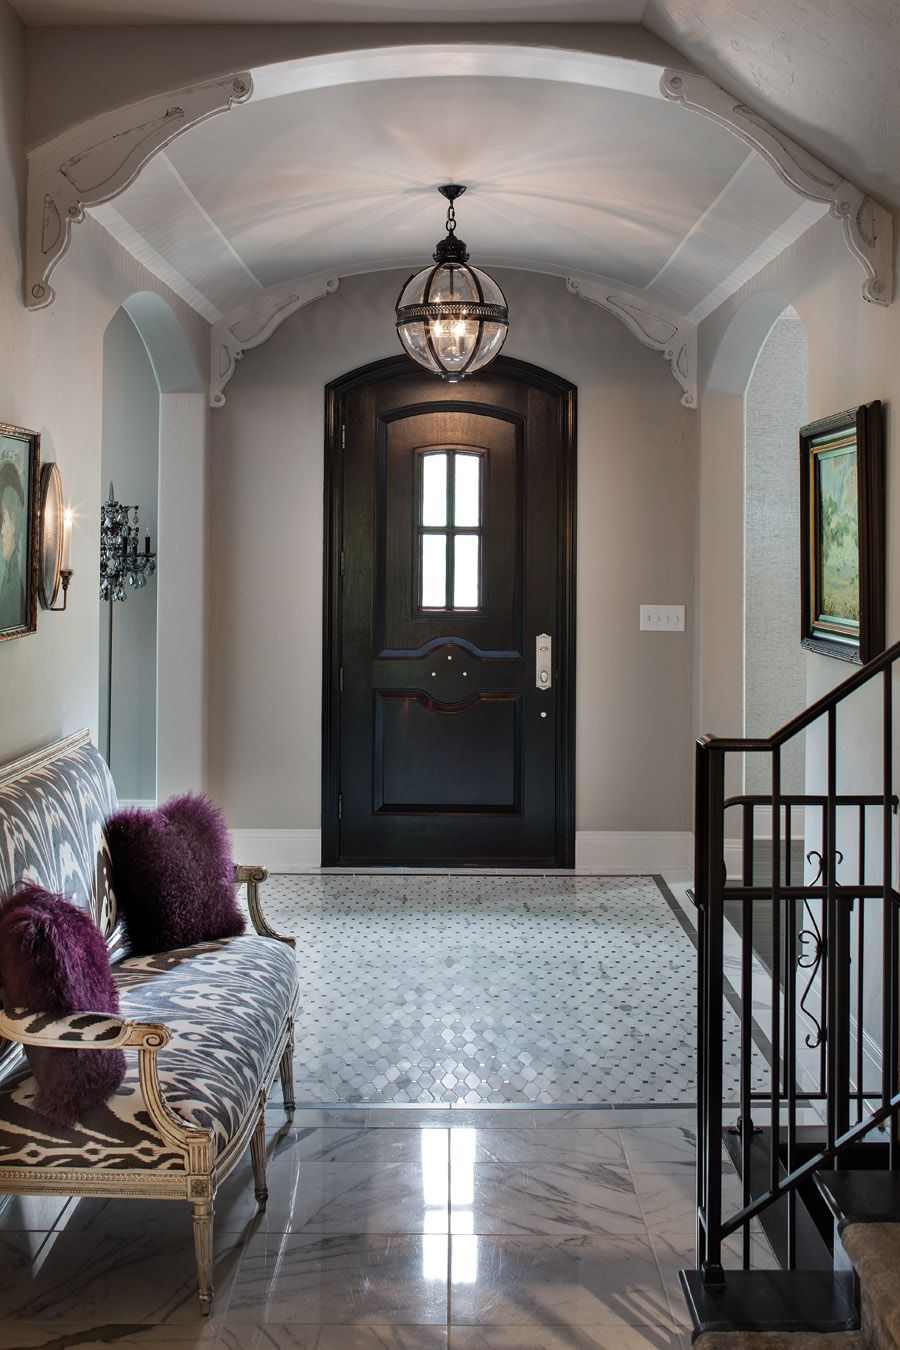 A Look Inside Interior Designer Jill Huse S French Inspired Home In Indianapolis Indiana Entryway Photos By Tony Valainis